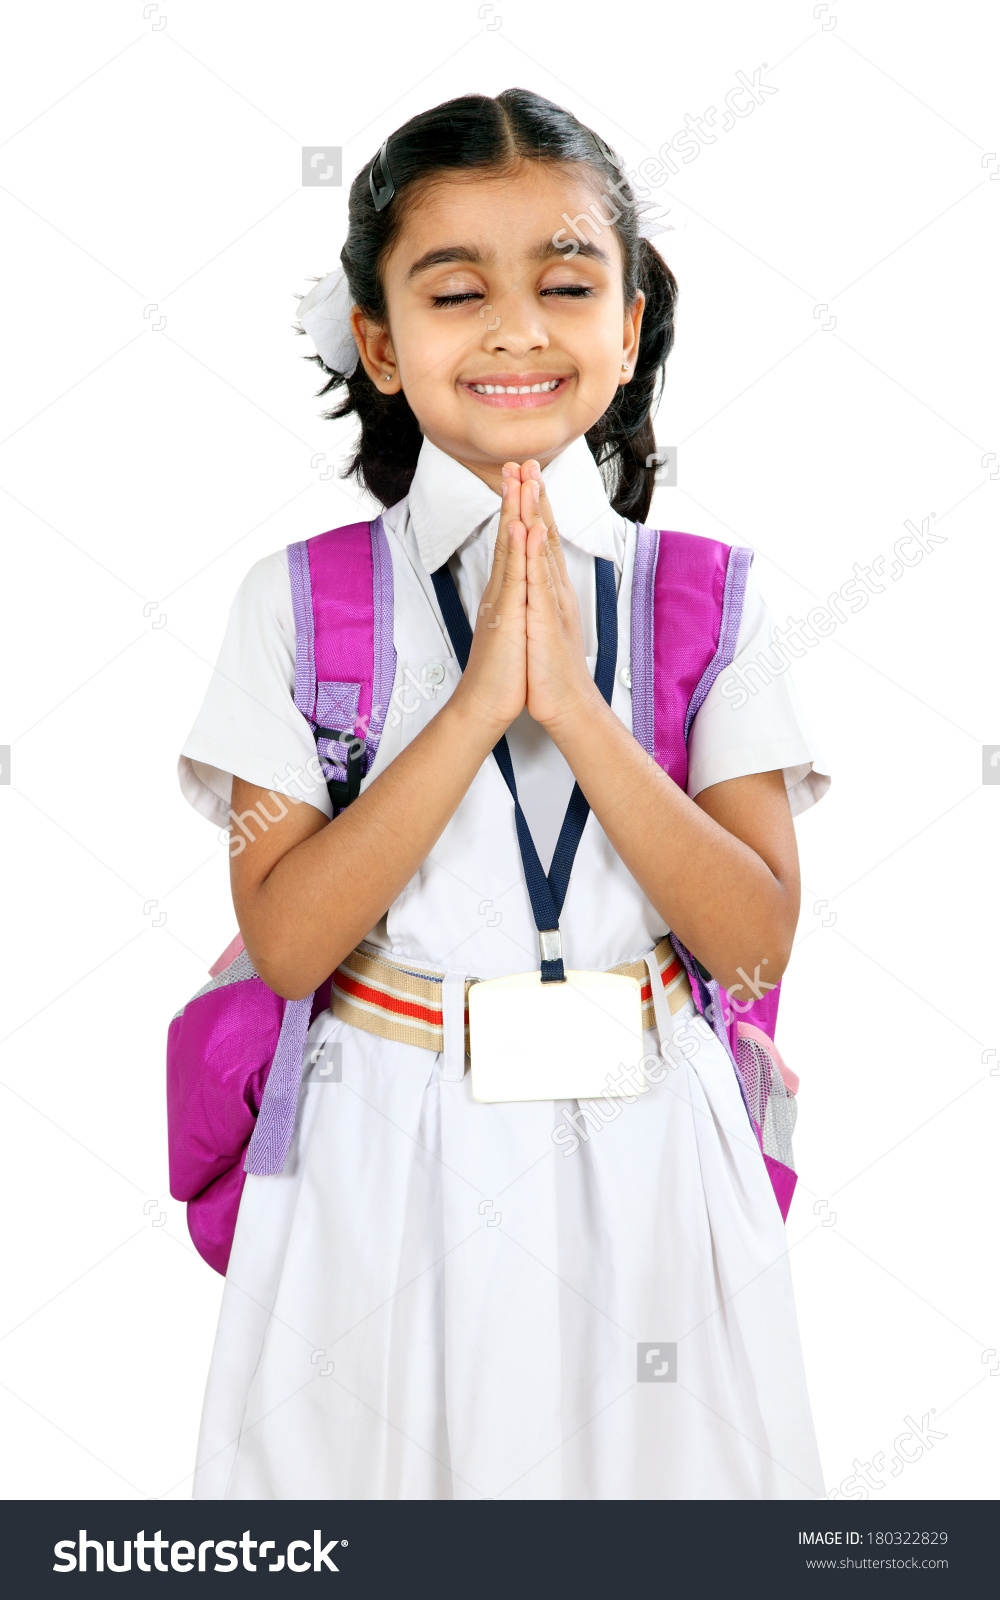 Bag clipart primary school Indian school Bags with clipartsgram